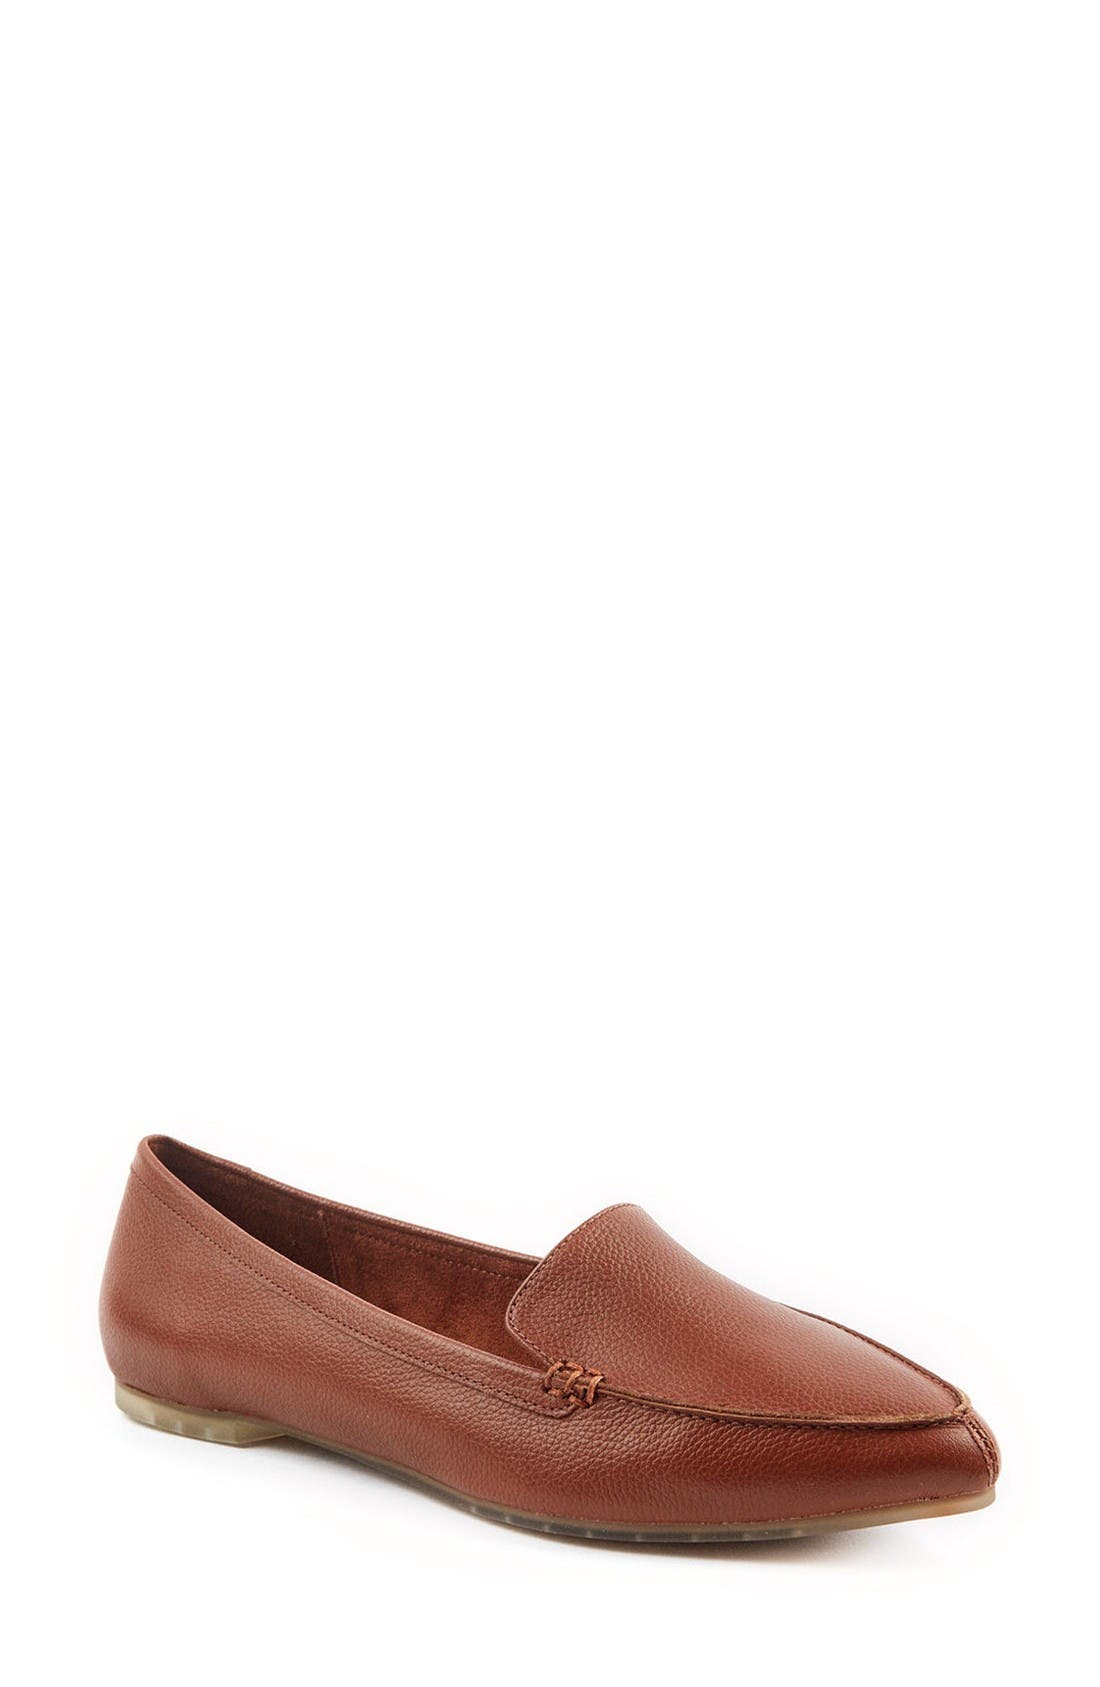 Alternate Image 1 Selected - Me Too Audra Loafer Flat (Women)